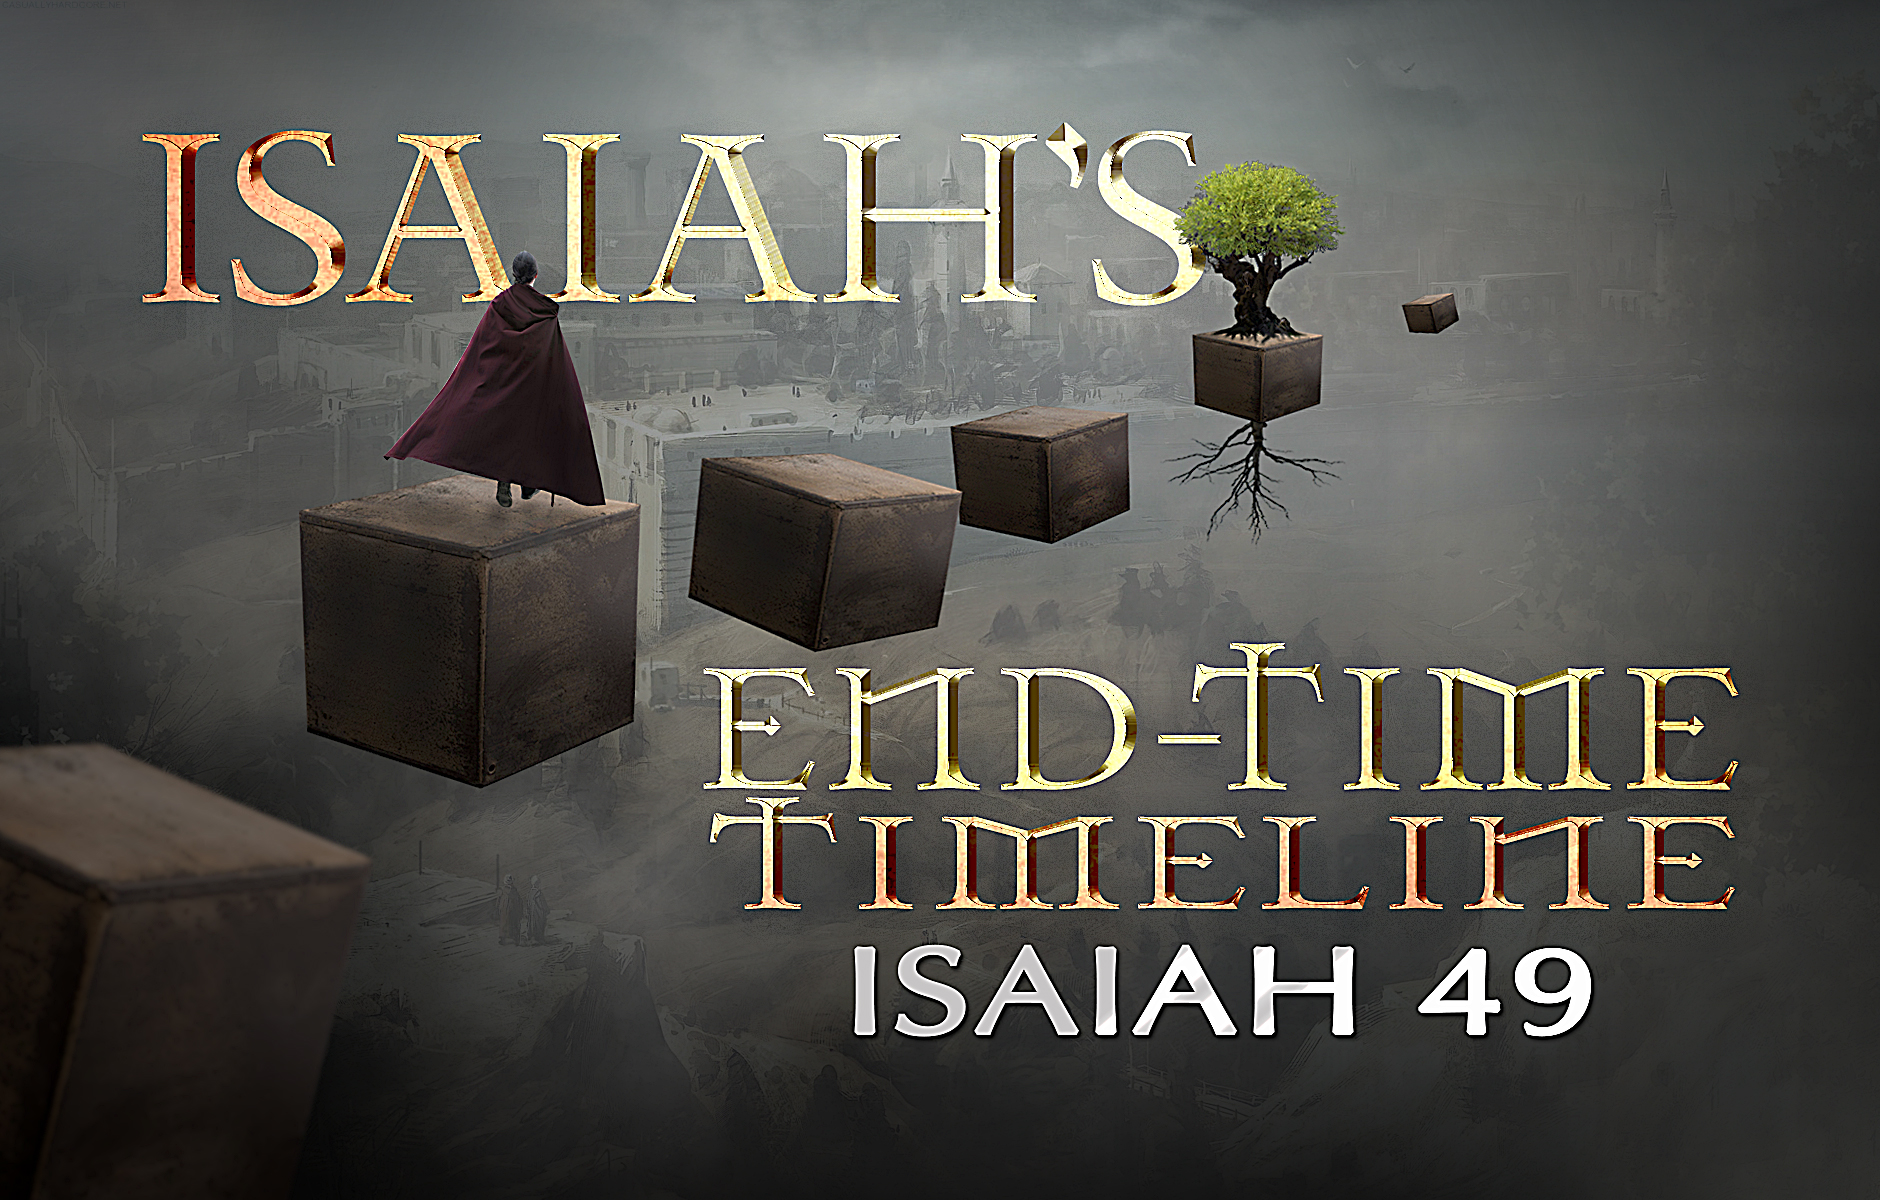 Isaiah's End-time Timeline Chapter 49